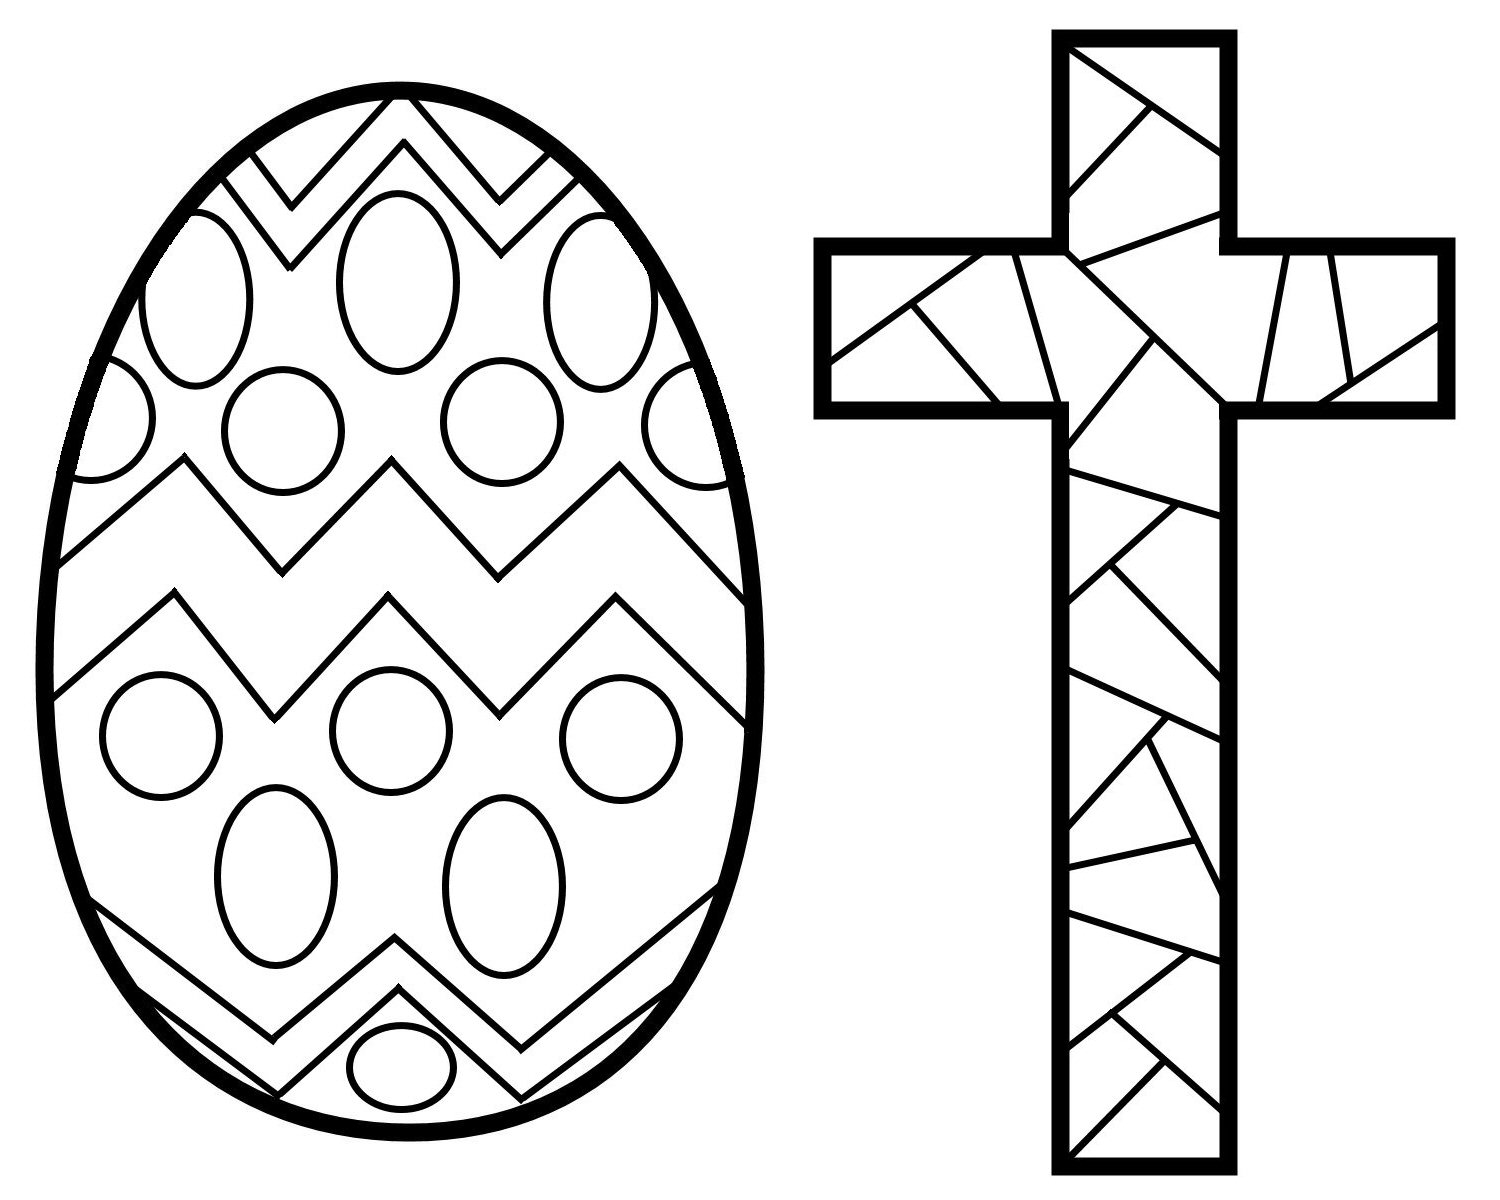 Free Cross Coloring Pages At Getdrawings Com Free For Personal Use